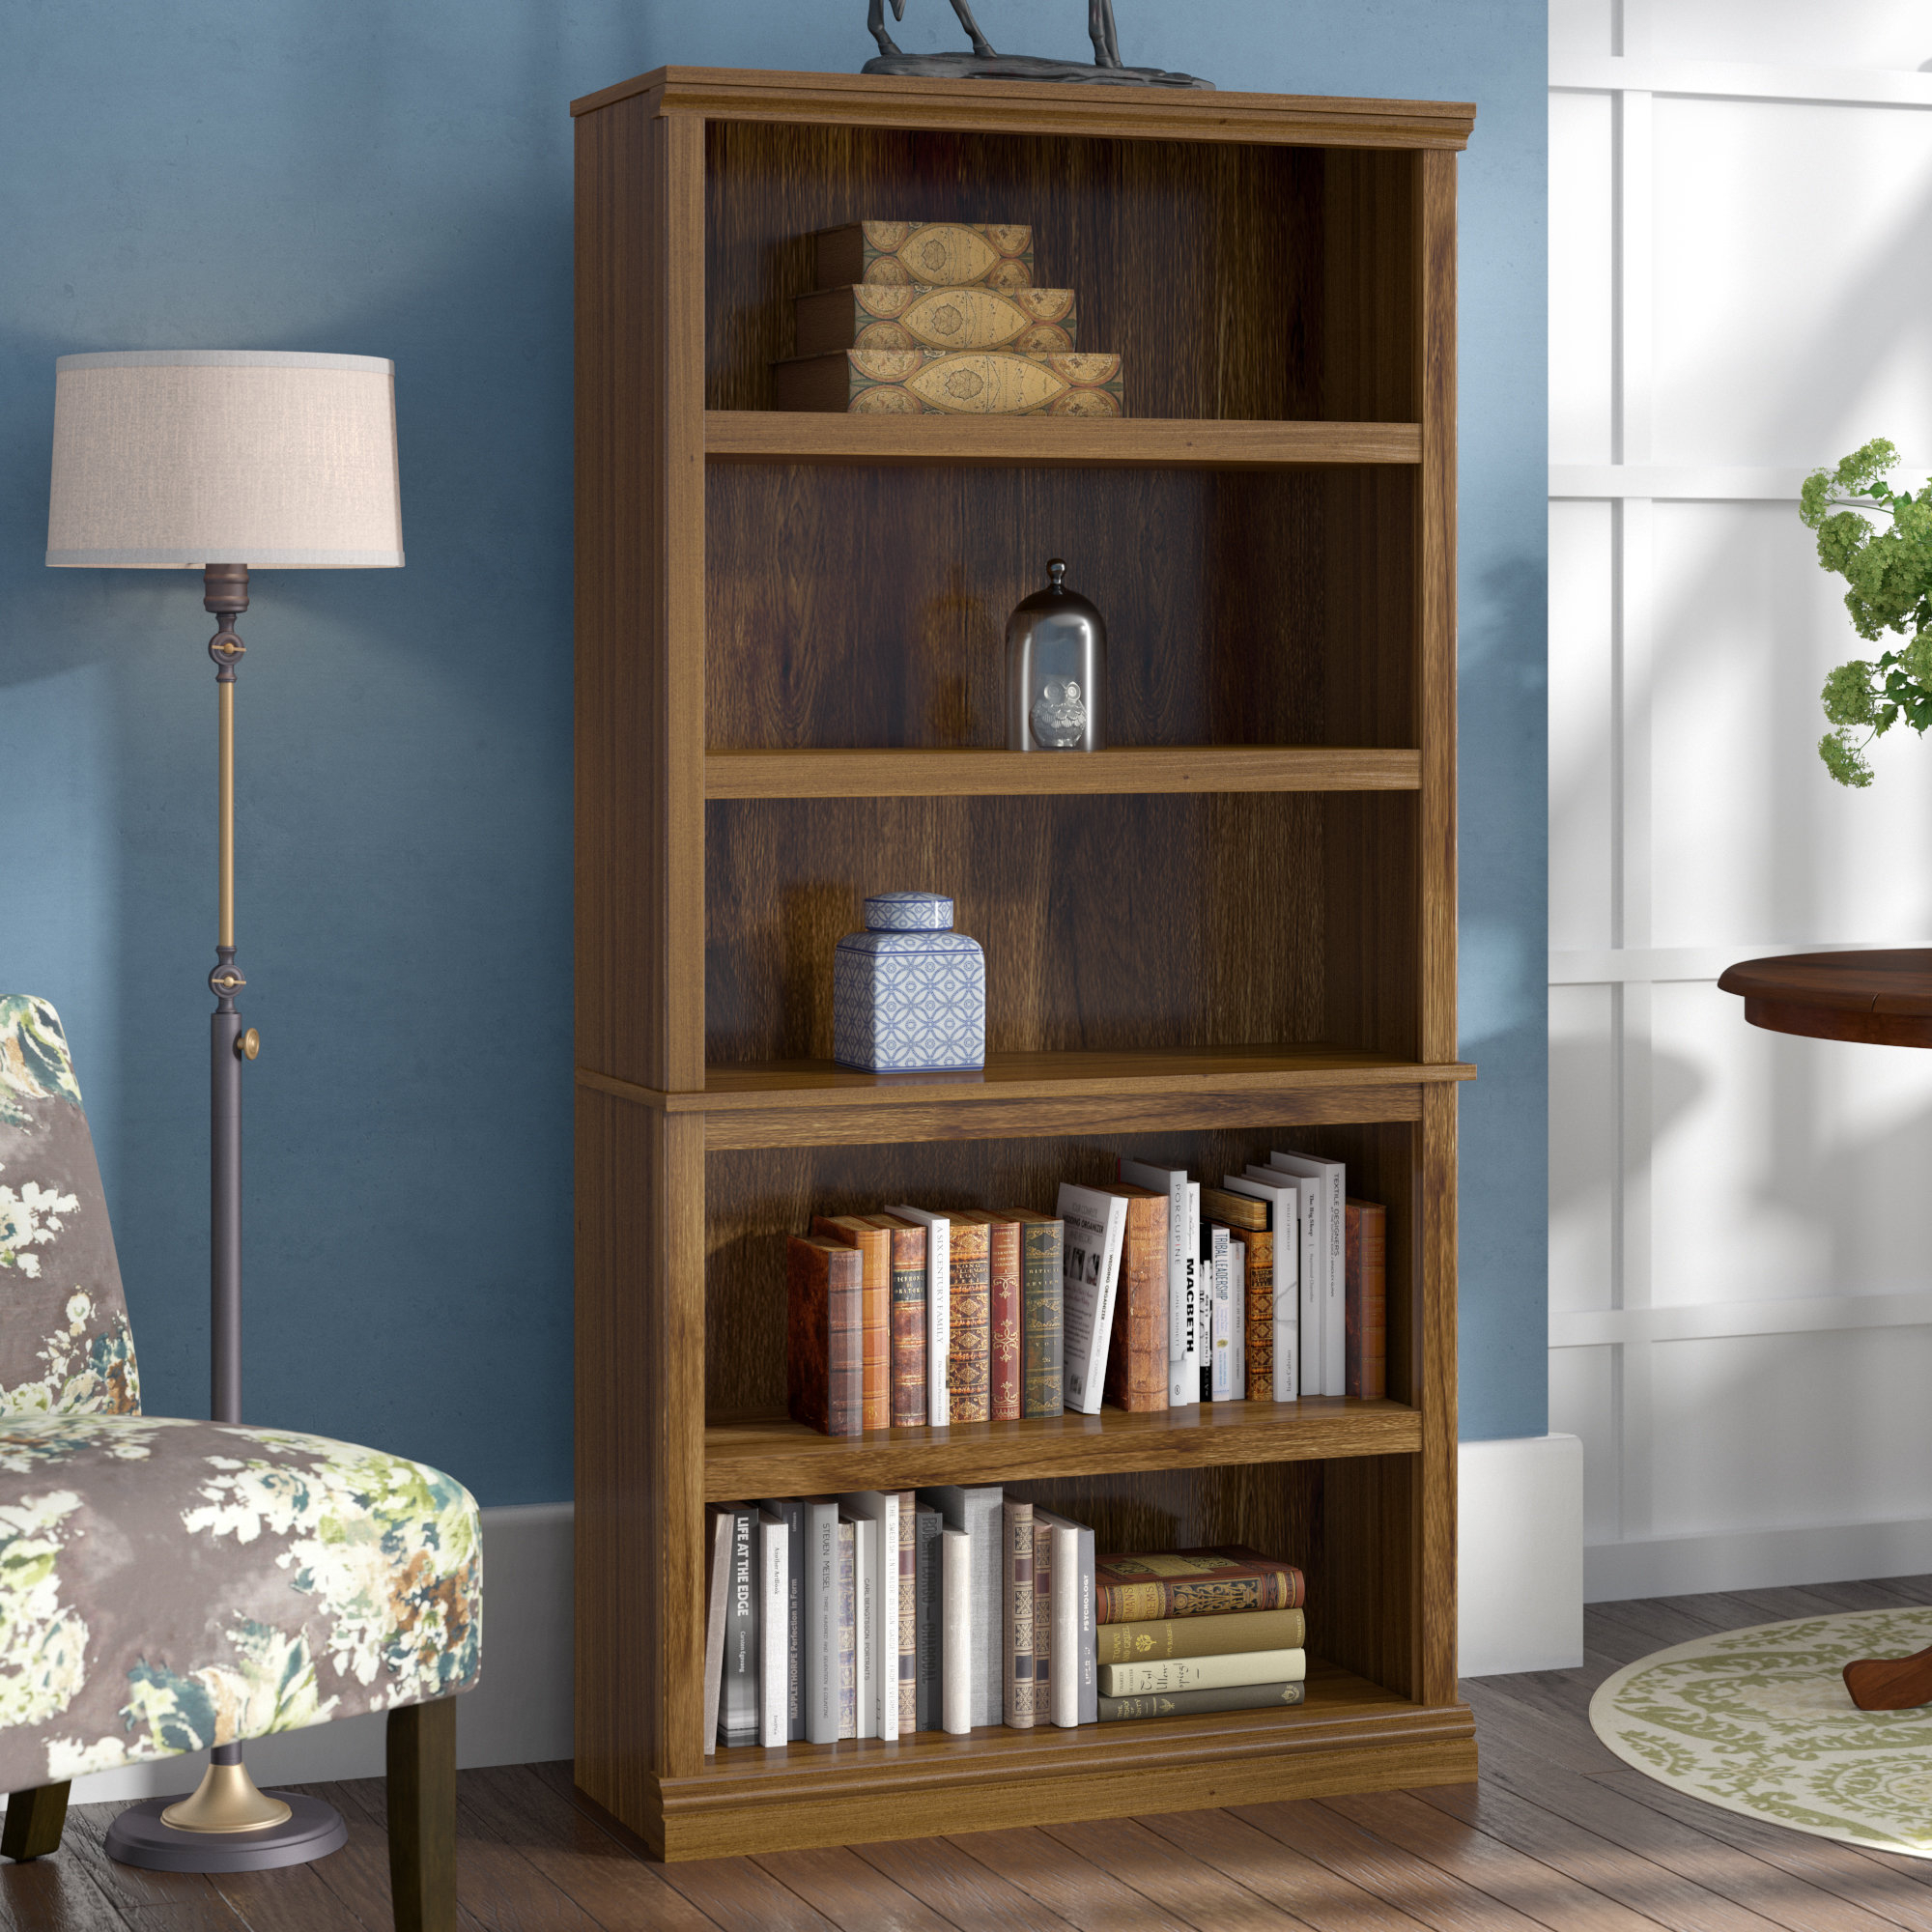 Three Posts Abigail Standard Bookcase & Reviews | Wayfair Inside Abigail Ii Sofa Chairs (View 20 of 20)